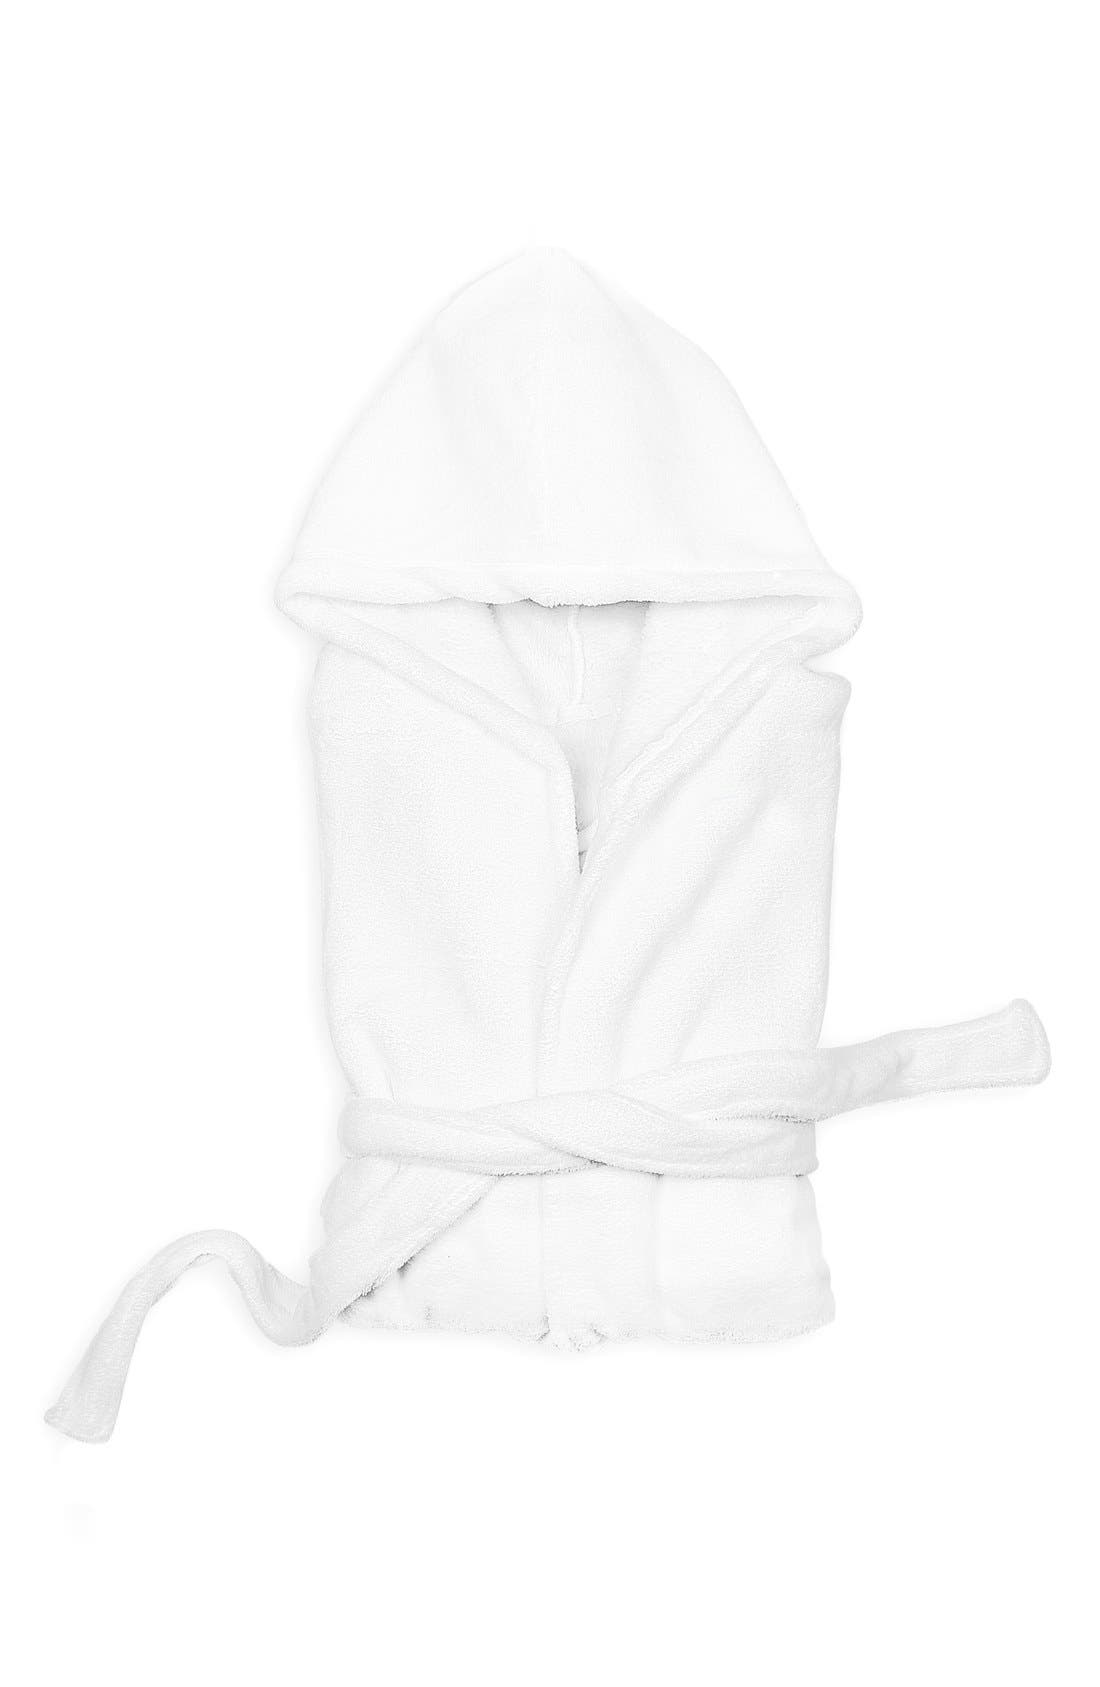 Personalized Plush Hooded Spa Robe,                             Main thumbnail 1, color,                             100